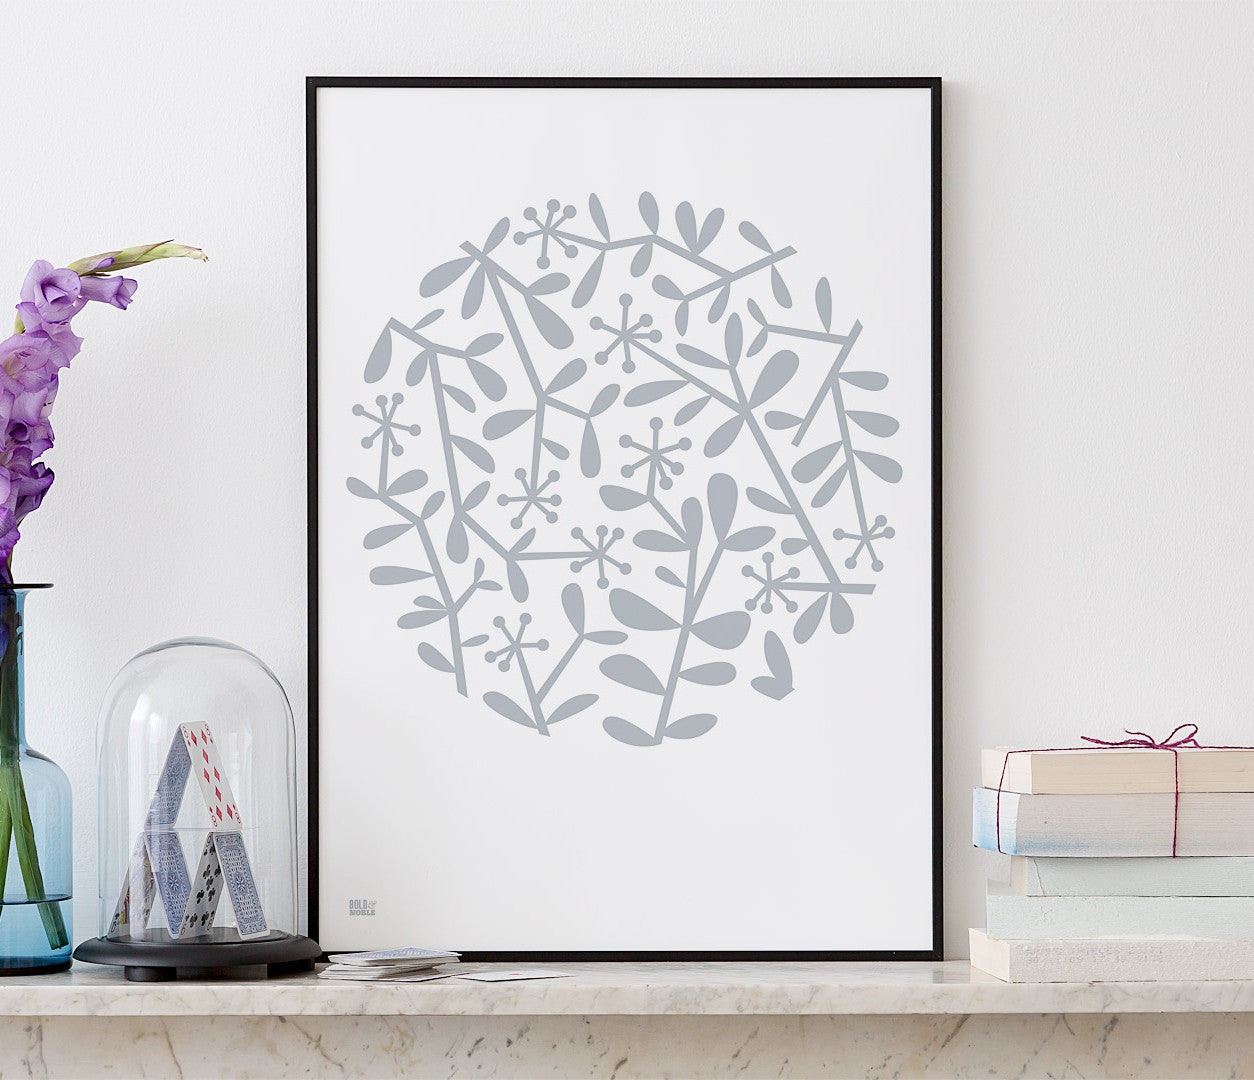 Wall Art ideas: Economical Screen Prints, Flora Leaf Pattern in warm grey